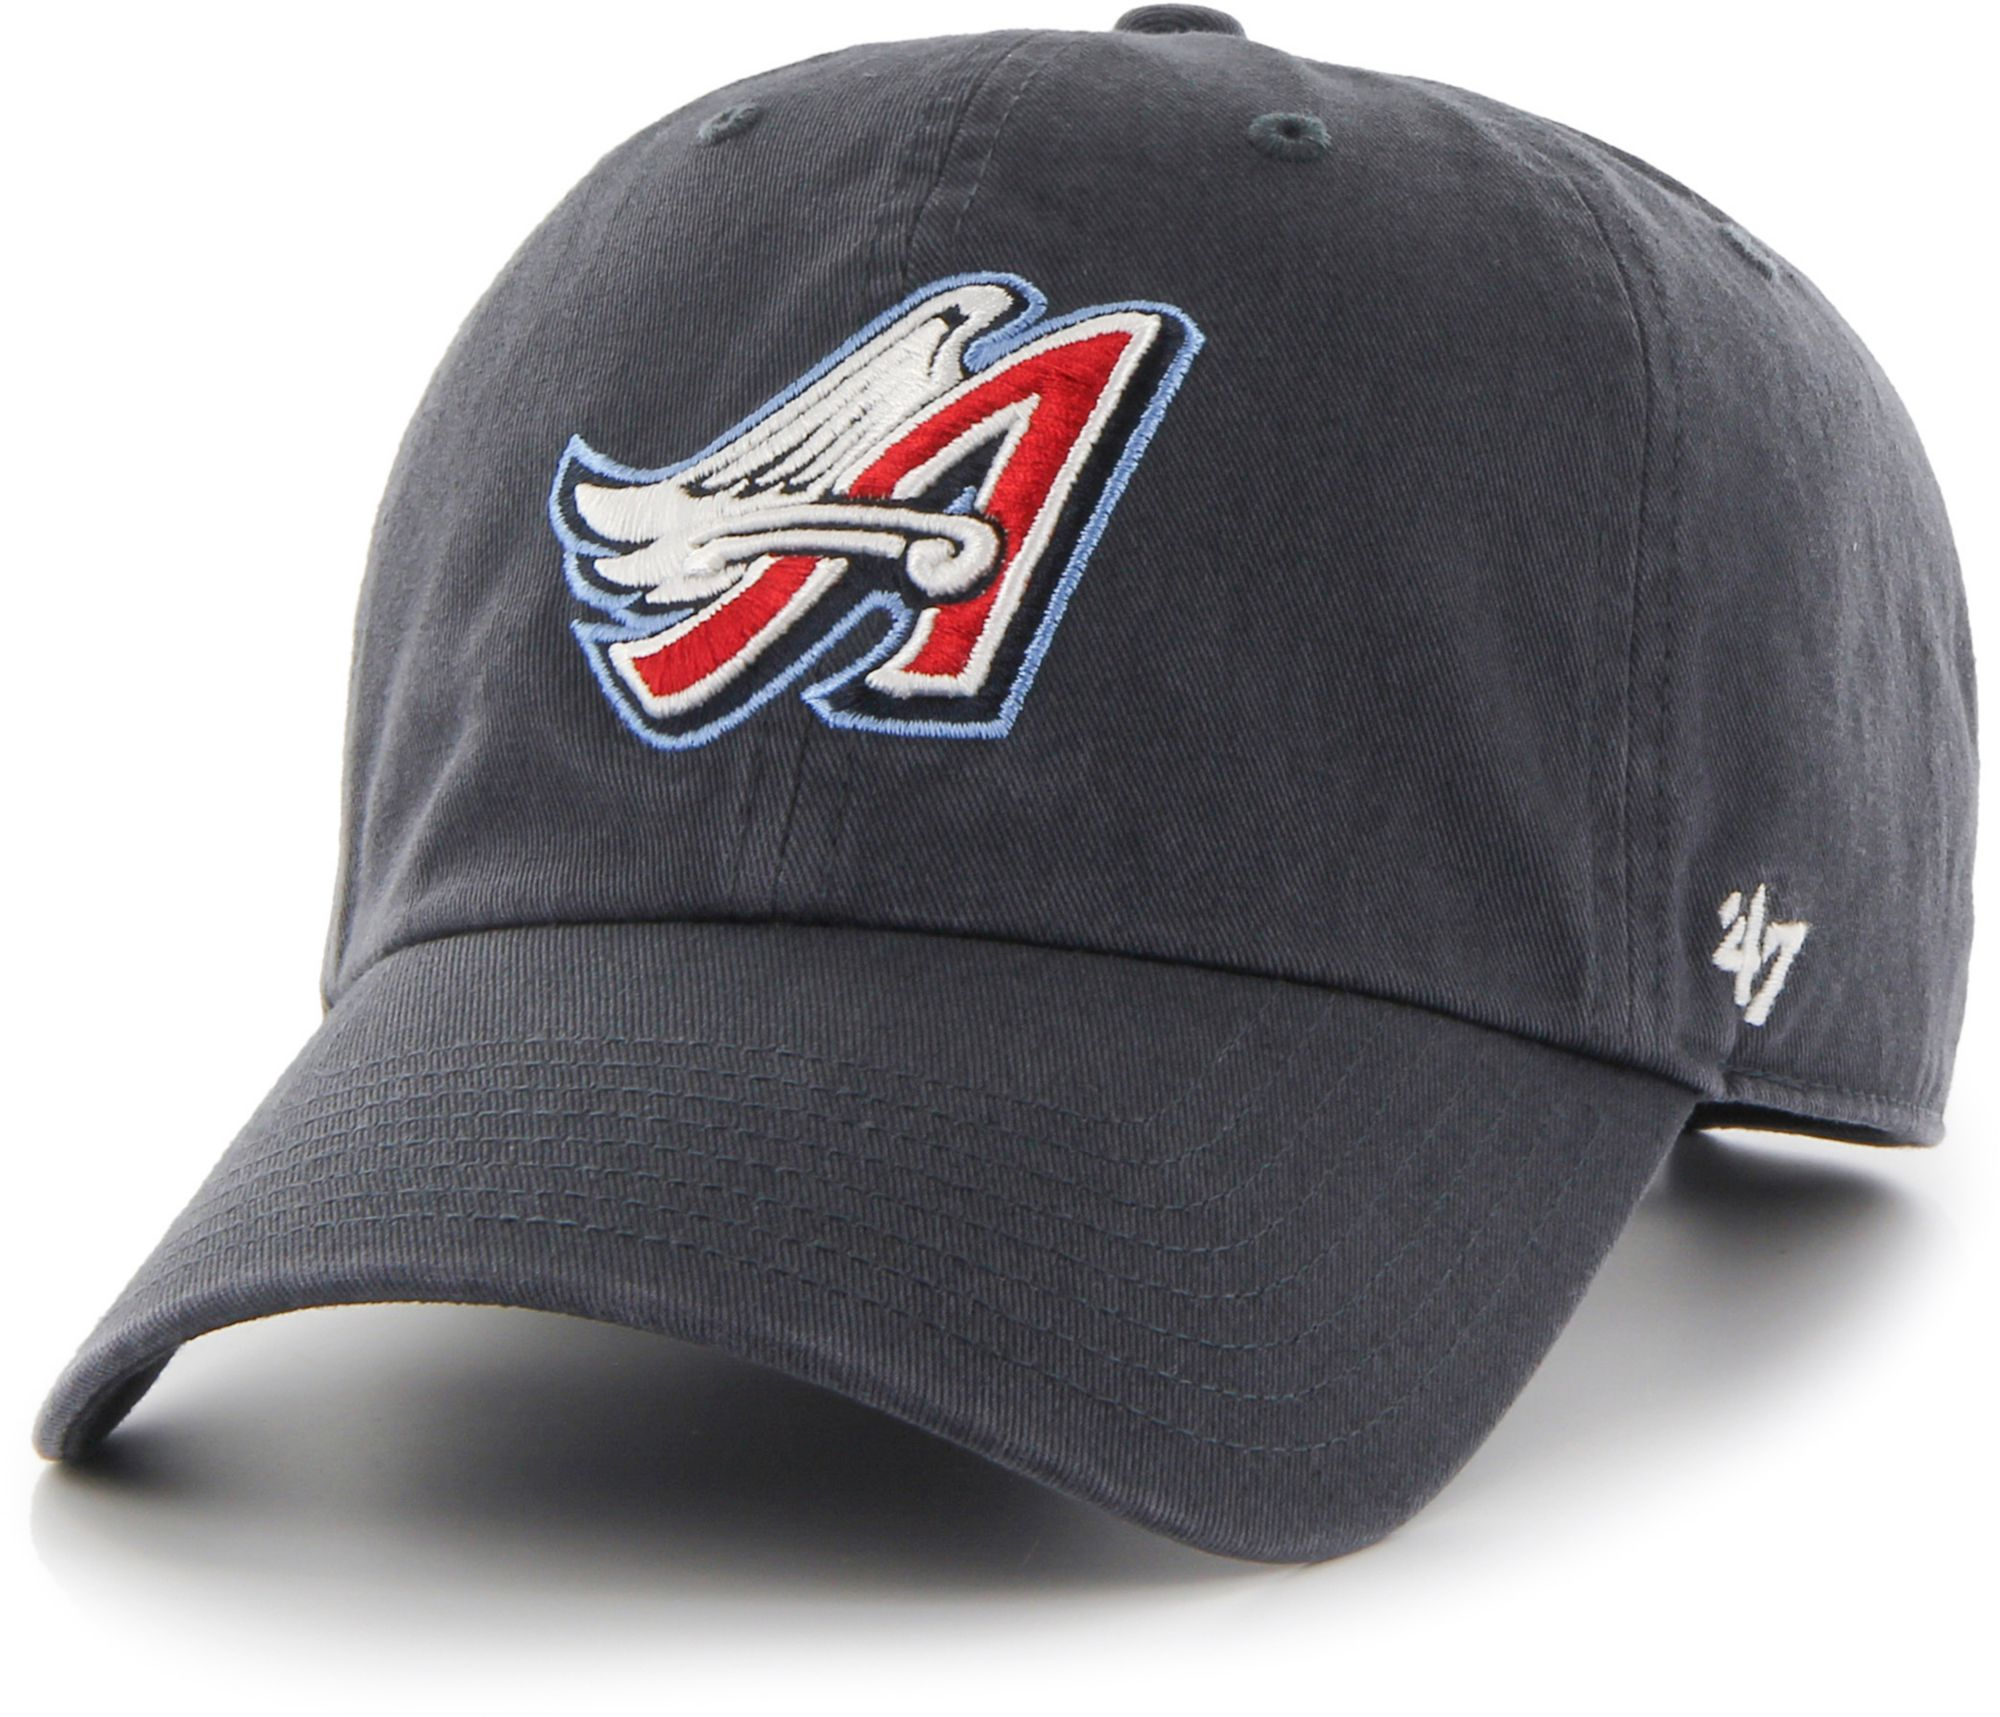 low cost b058e f45dc ... reduced 47 mens los angeles angels clean up navy adjustable hat 5f6d4  25eb6